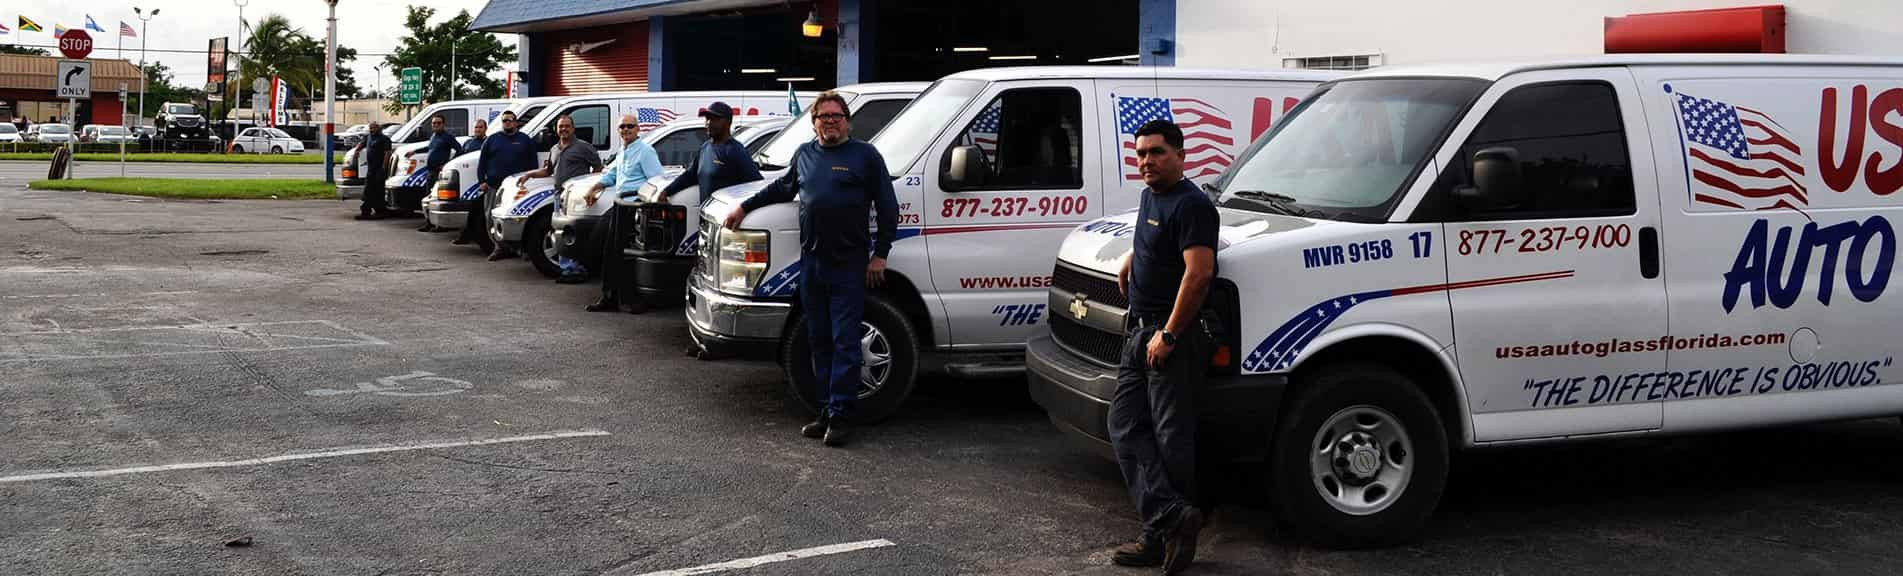 USA Auto Glass Team